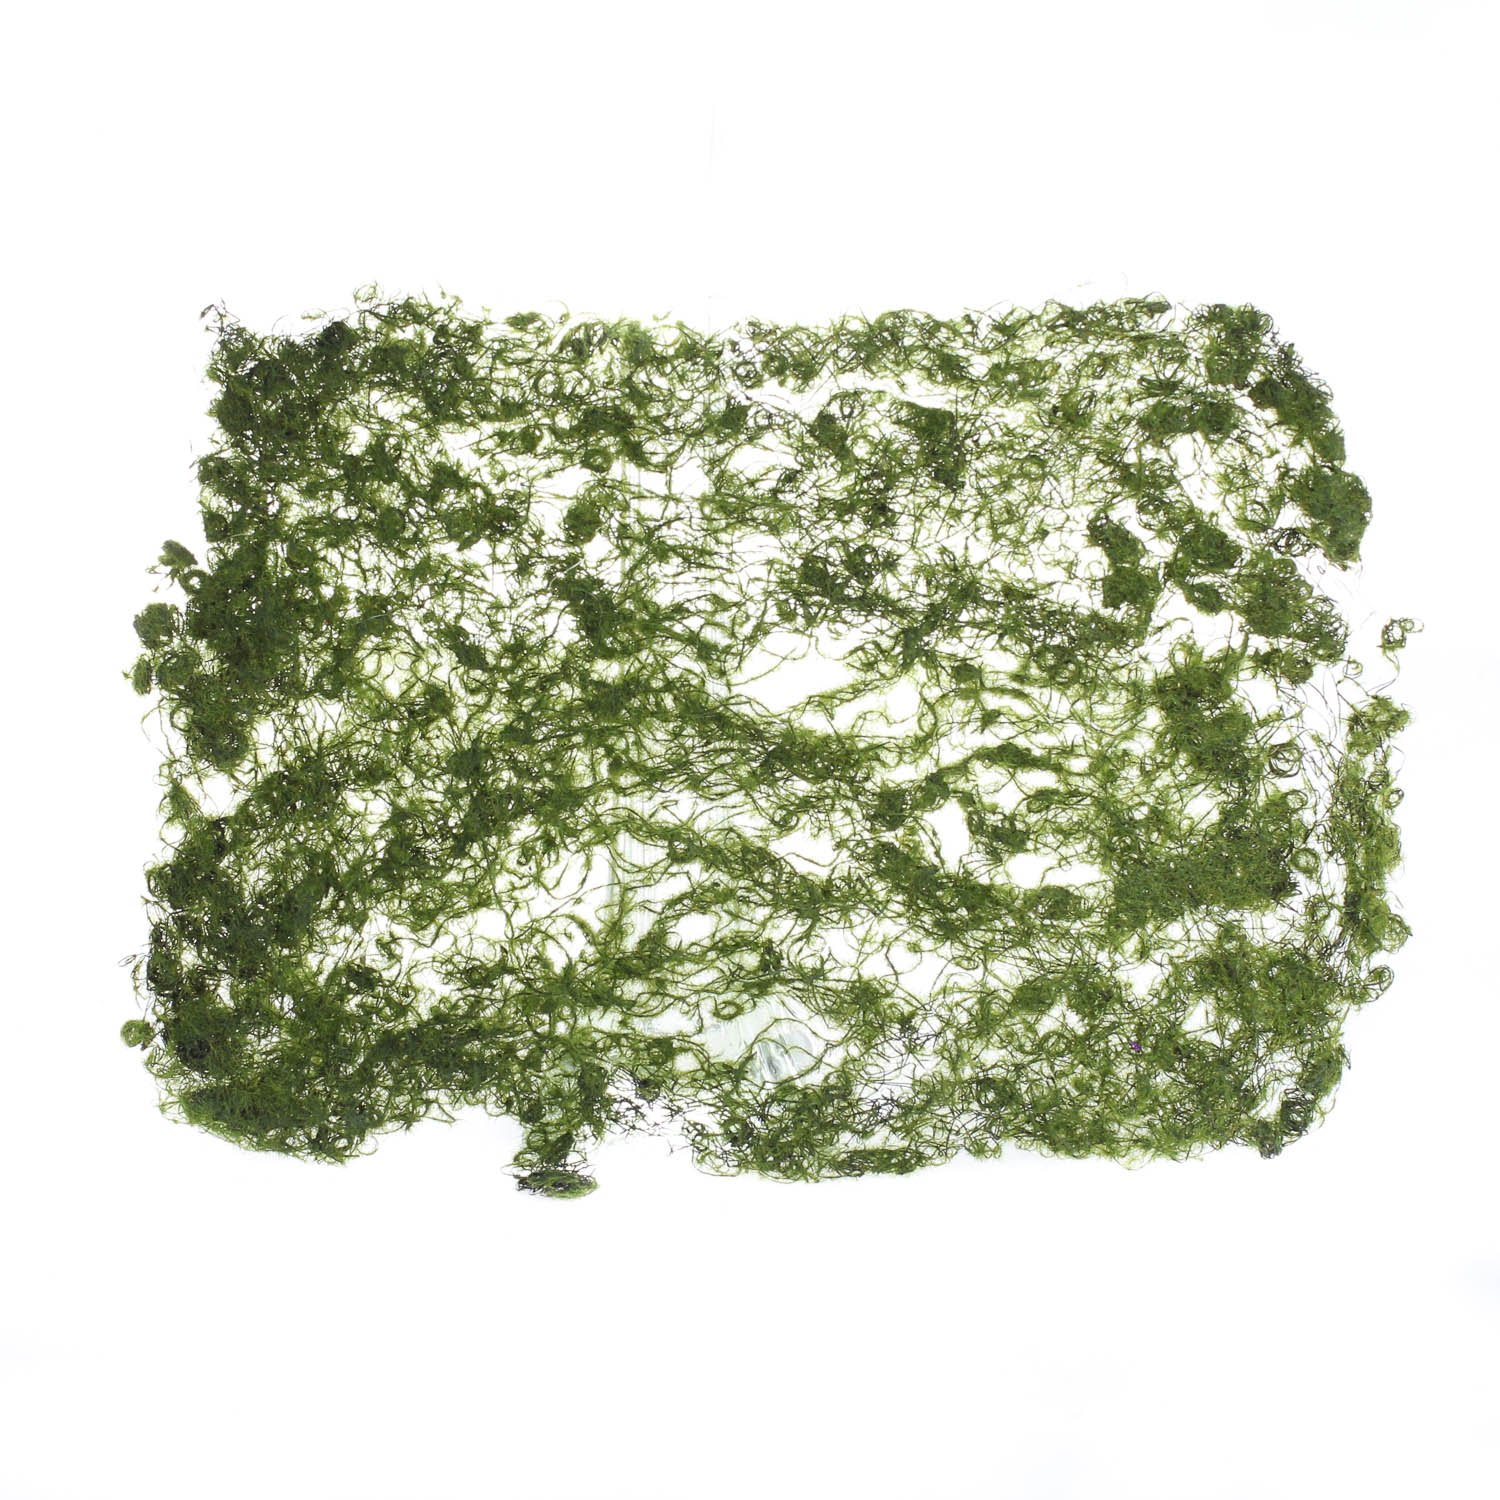 Factory Direct Craft Set of 2 Artificial Moss Sheets for Embellishing Craft Projects, Fairy Gardens, and Displays